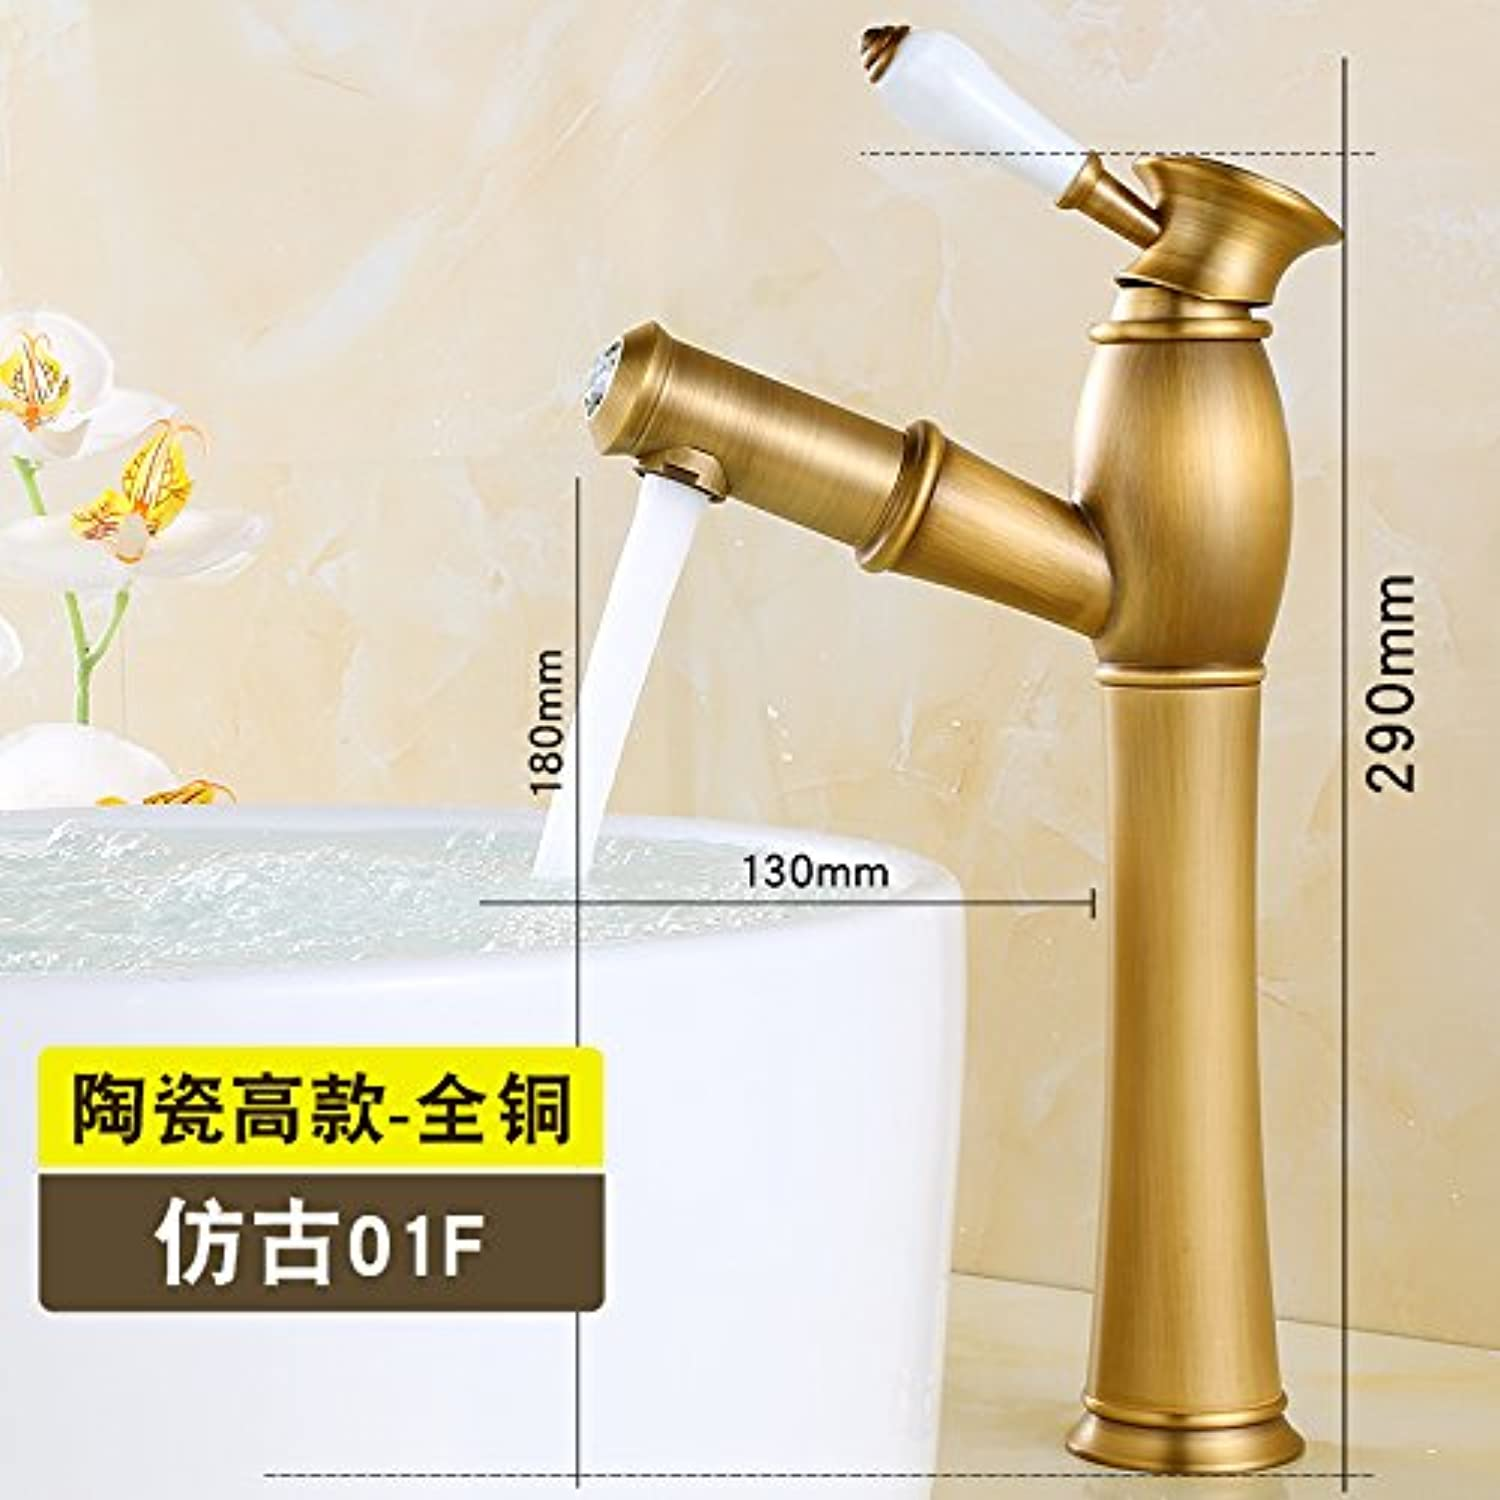 SADASD Contemporary Bathroom Full Copper Basin Faucet Scale gold Pull Double Pull-Down White Ceramic High-Basin Sink Mixer Tap Ceramic Valve Core Cold Water With G1 2 Hose